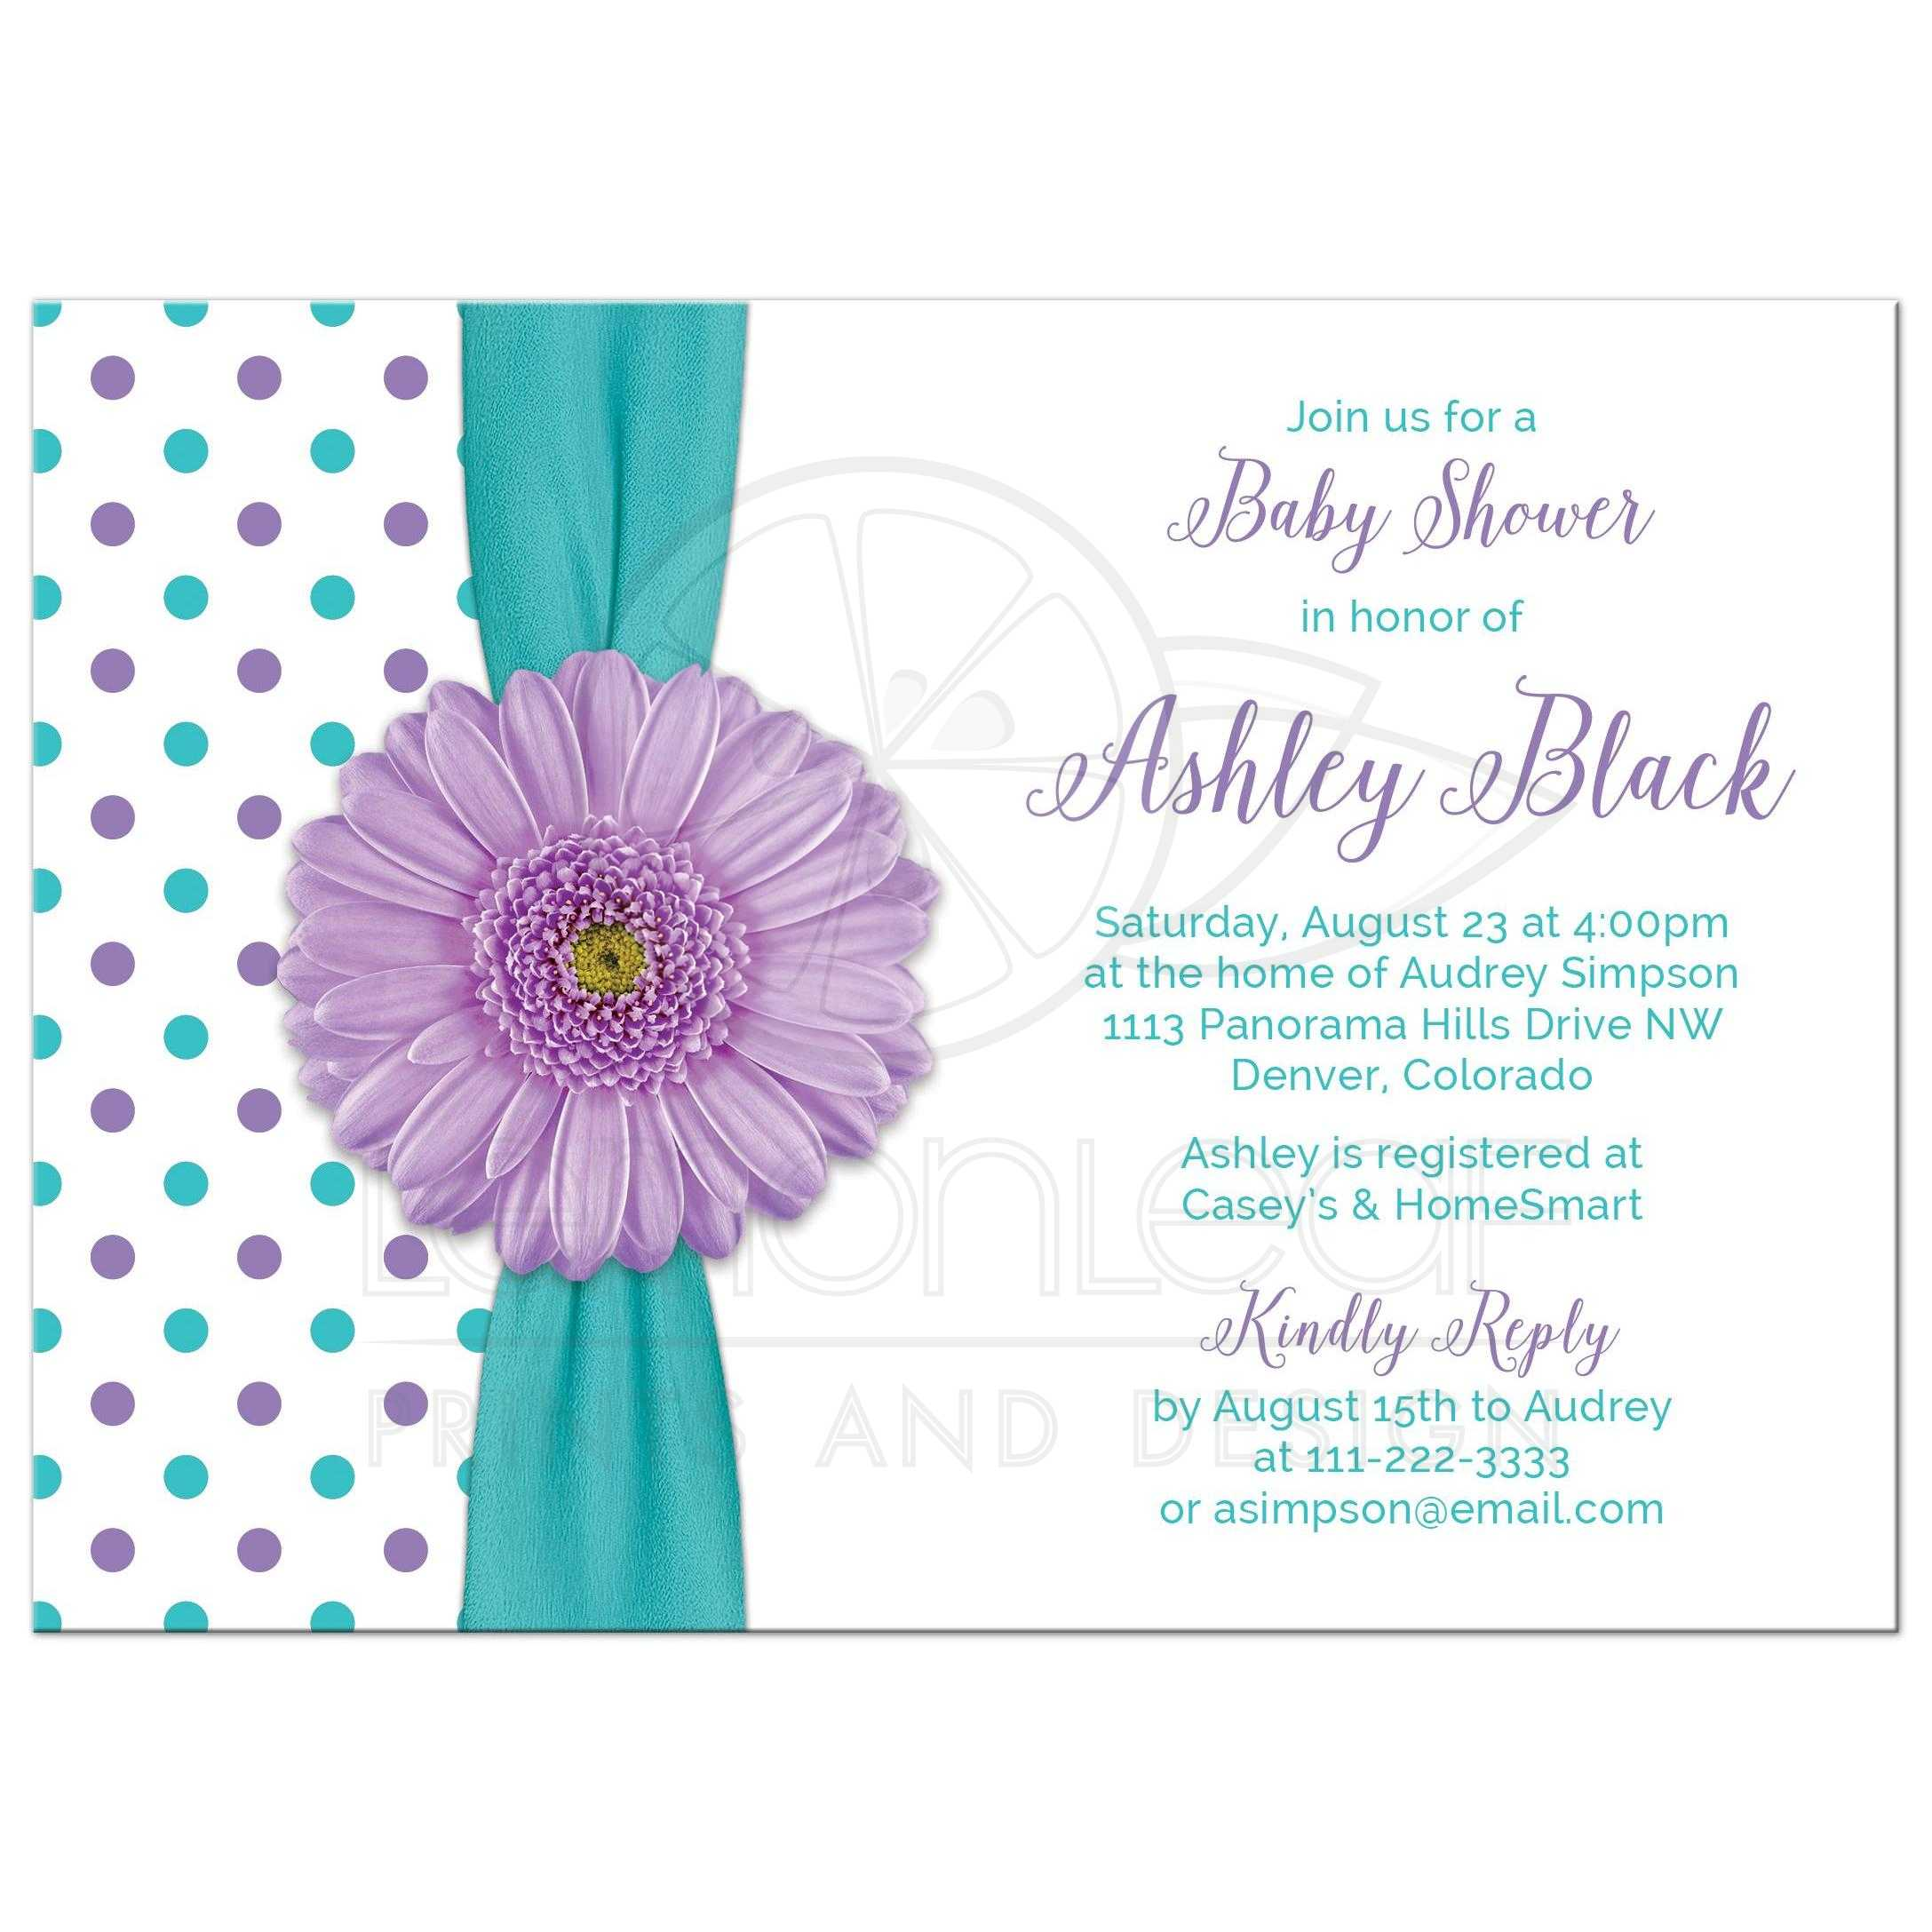 Cute Turquoise And White Polka Dot Purple Gerbera Daisy Baby Shower Invitation